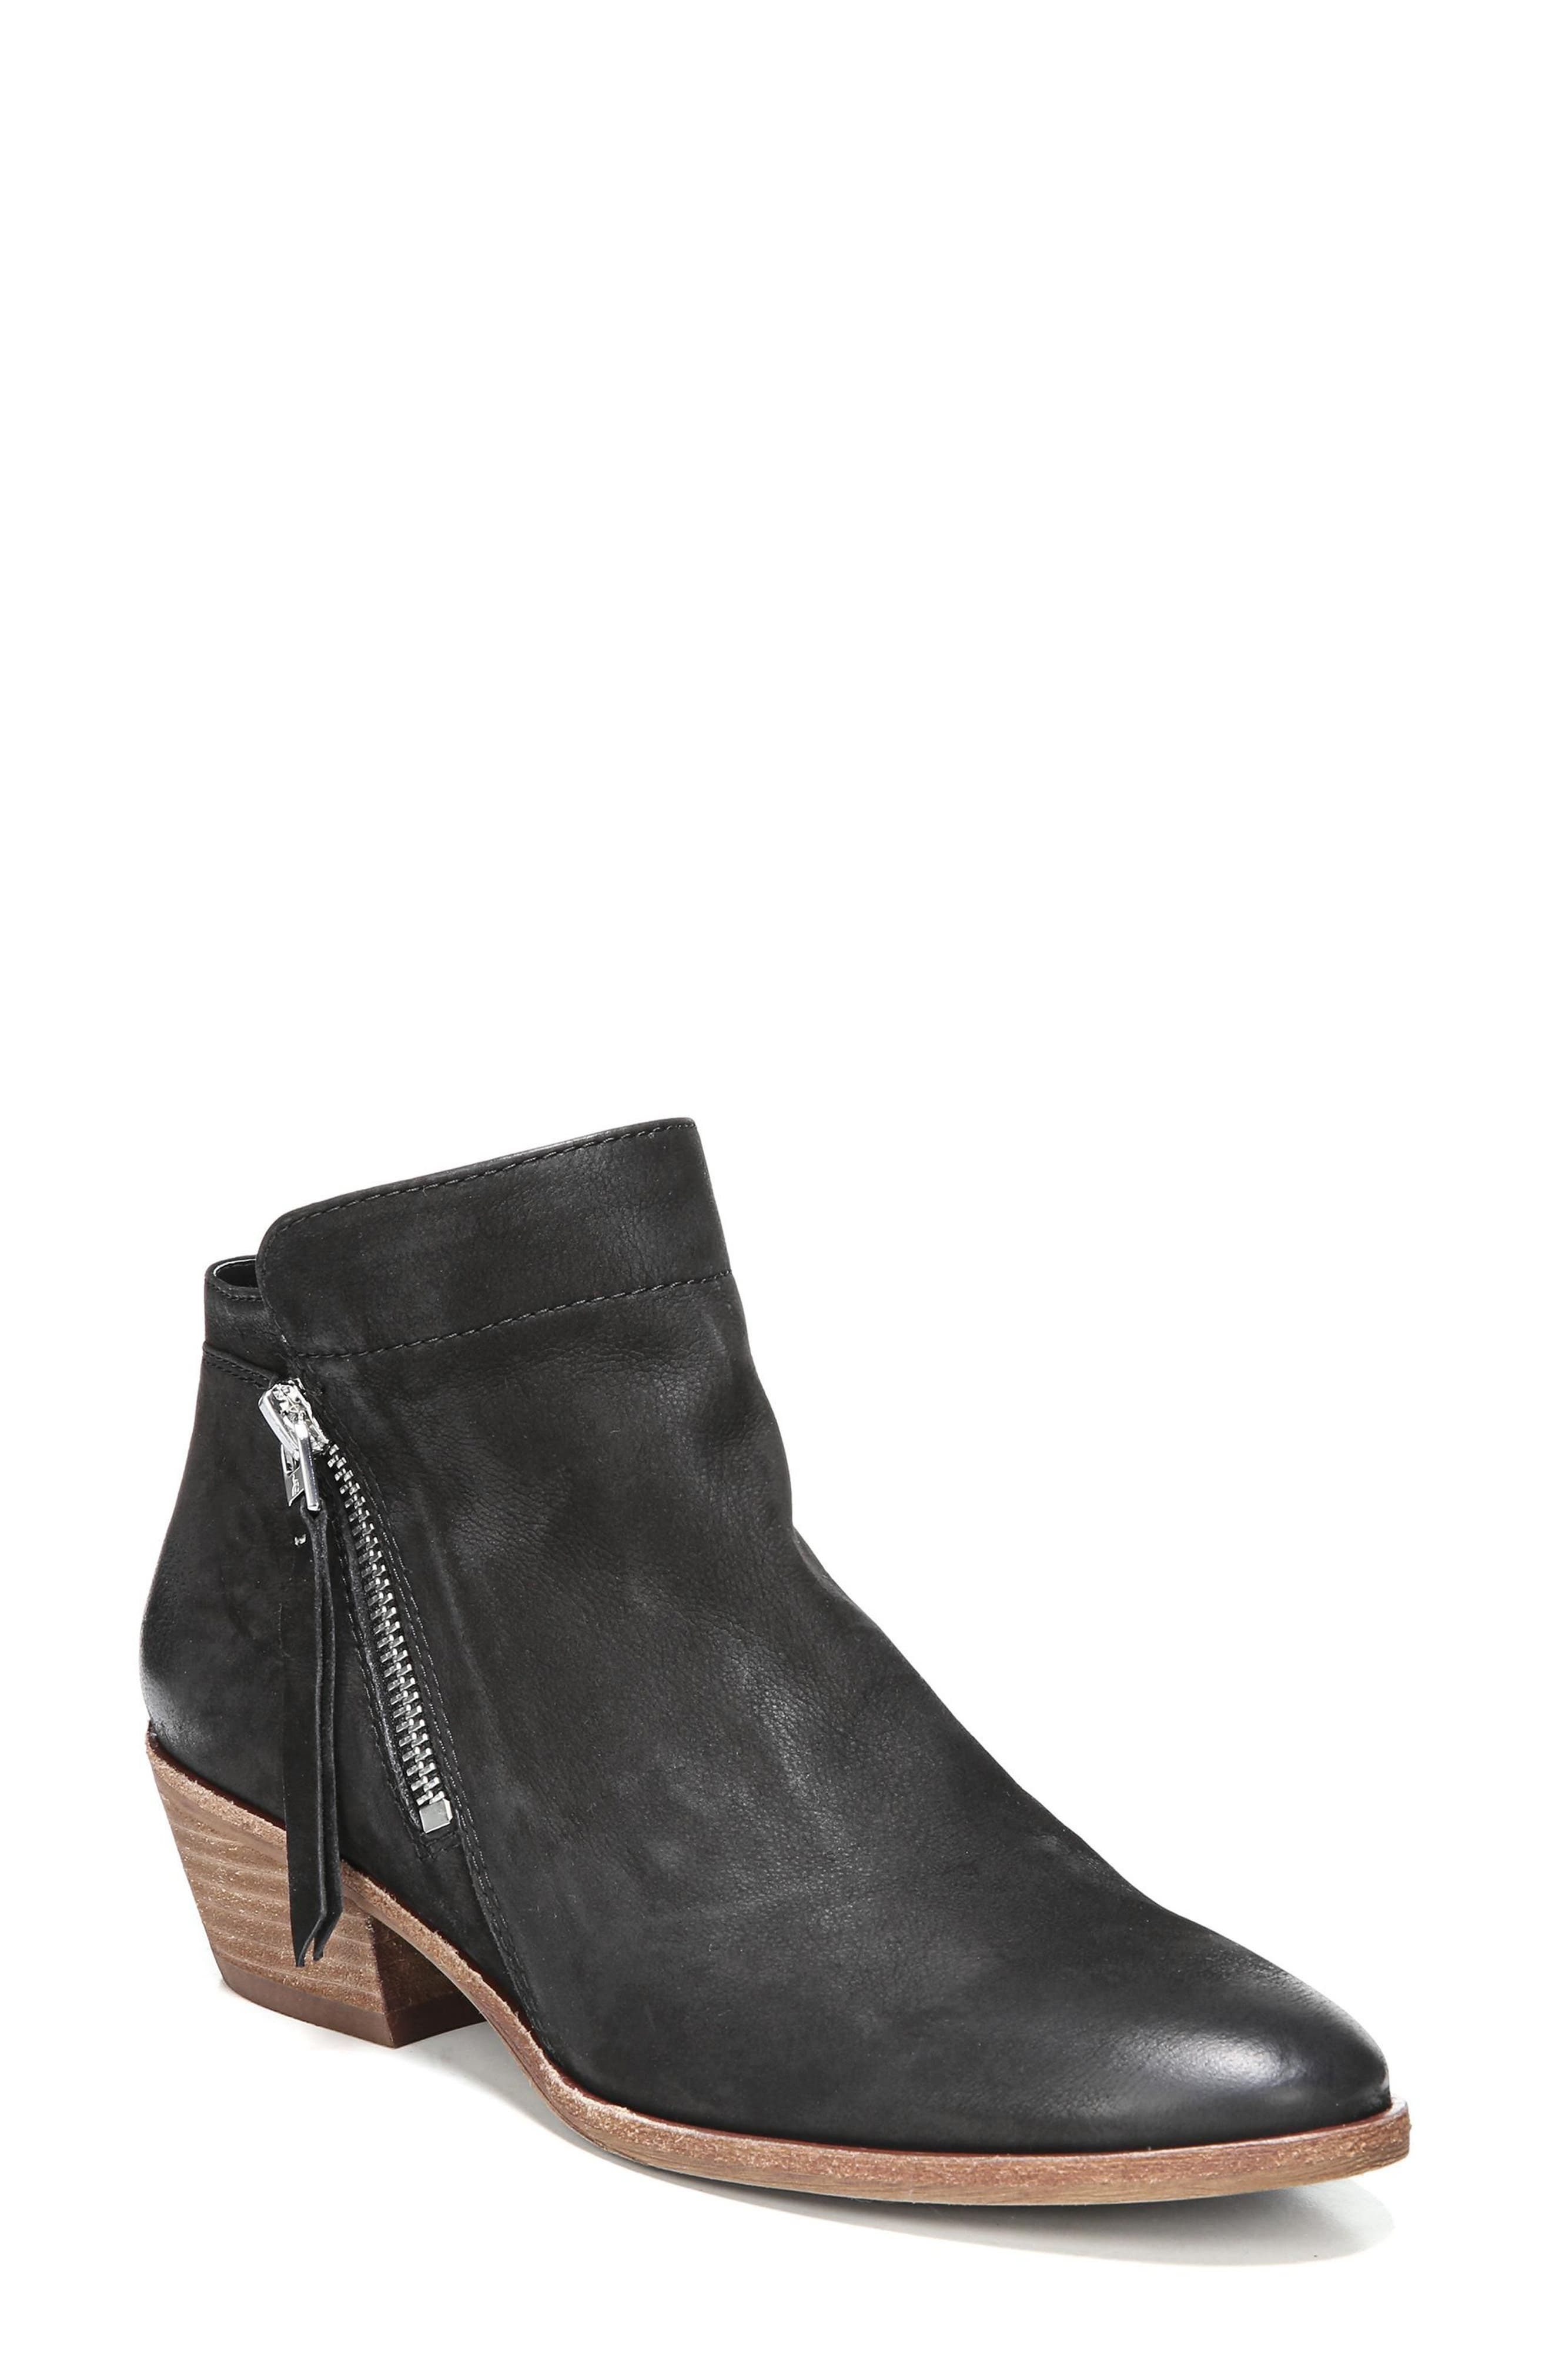 79762c09580 Women s Sam Edelman Booties   Ankle Boots